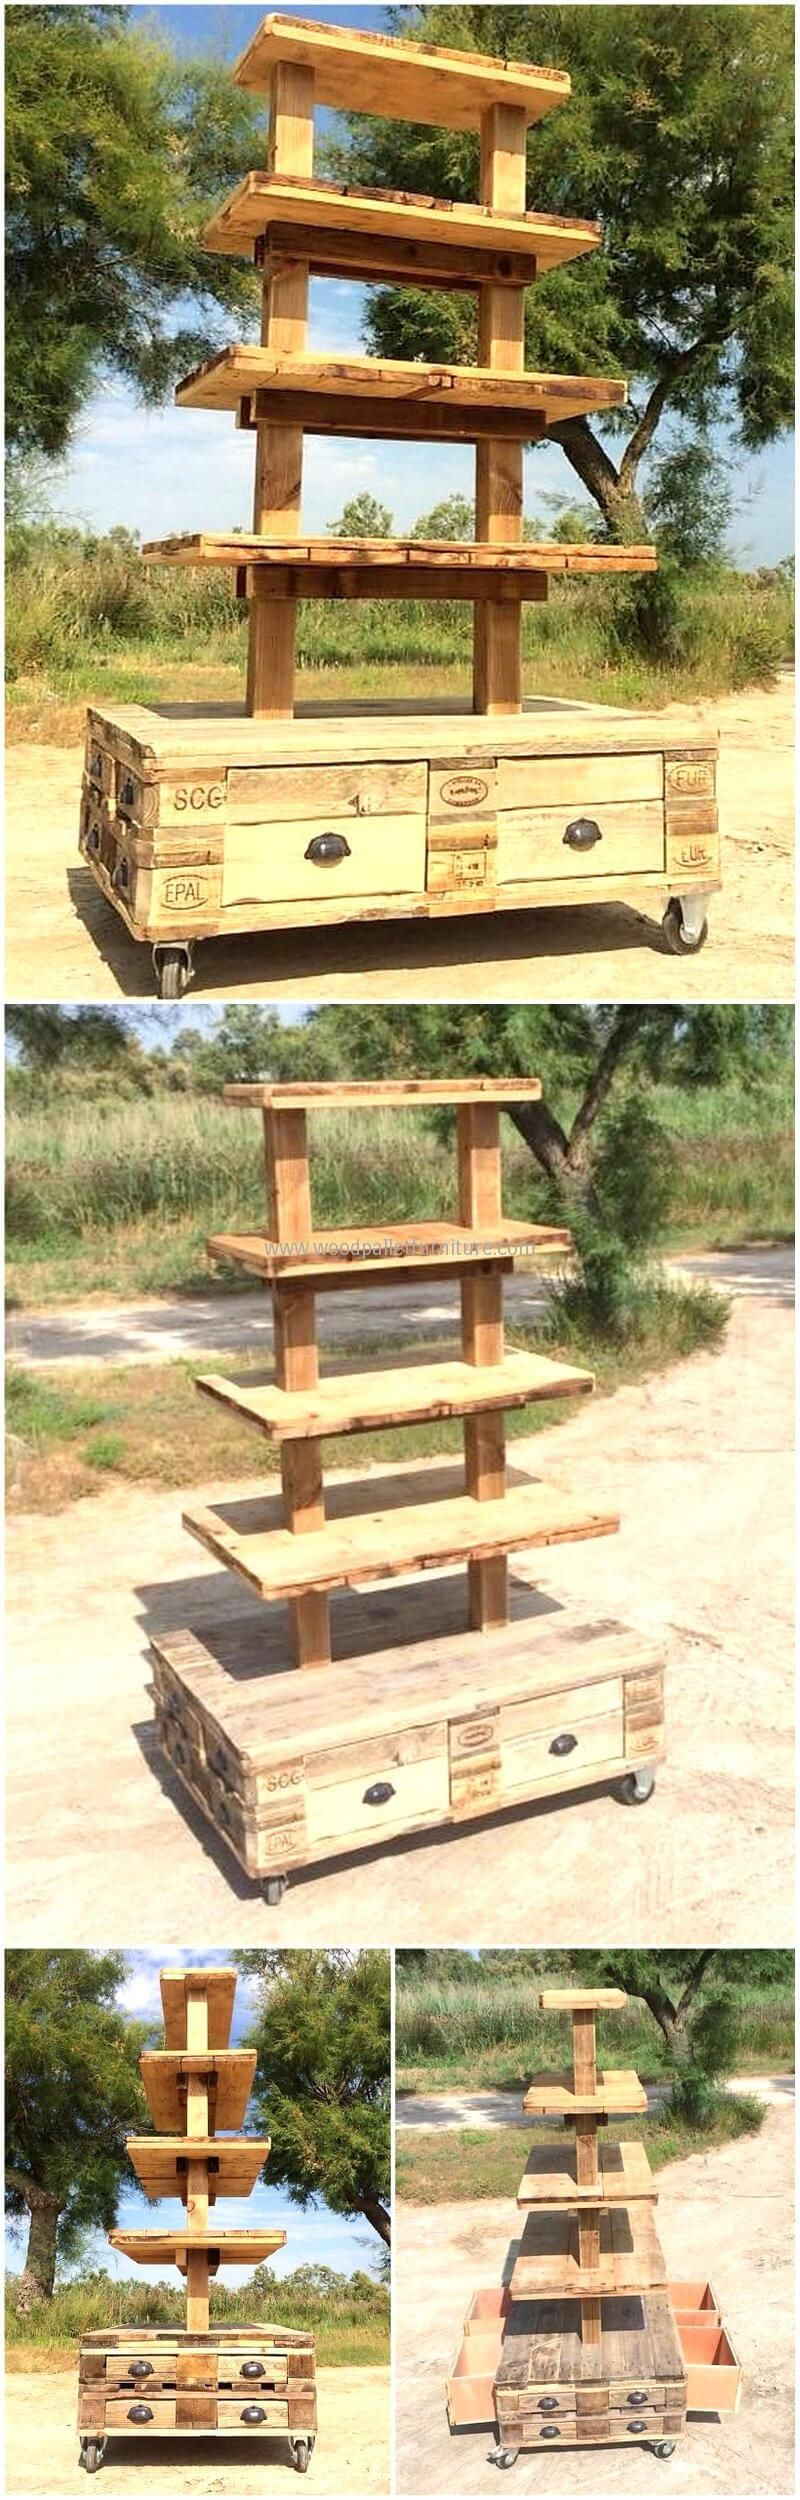 Stunning ideas for wood pallets reusing palets muebles for Reciclado de palets sillones